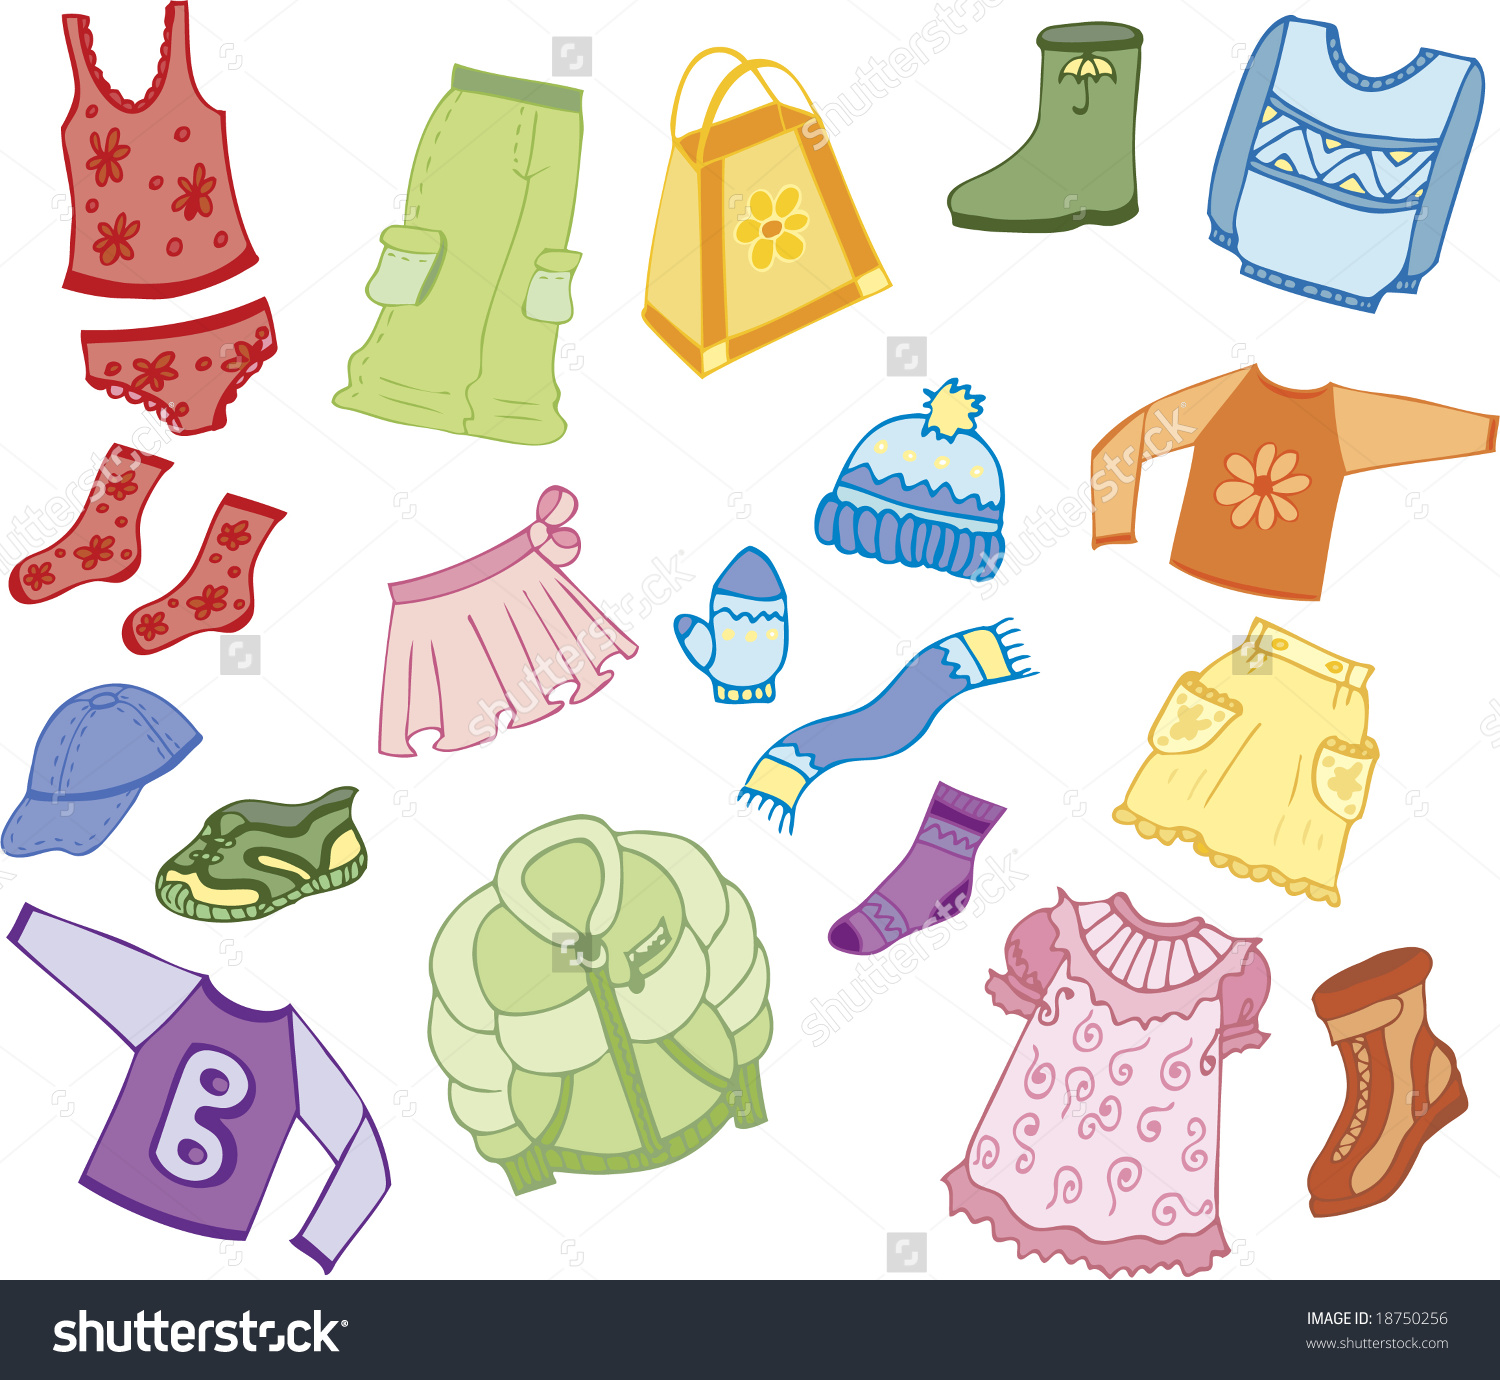 Clothes for kids clipart 8 » Clipart Station.